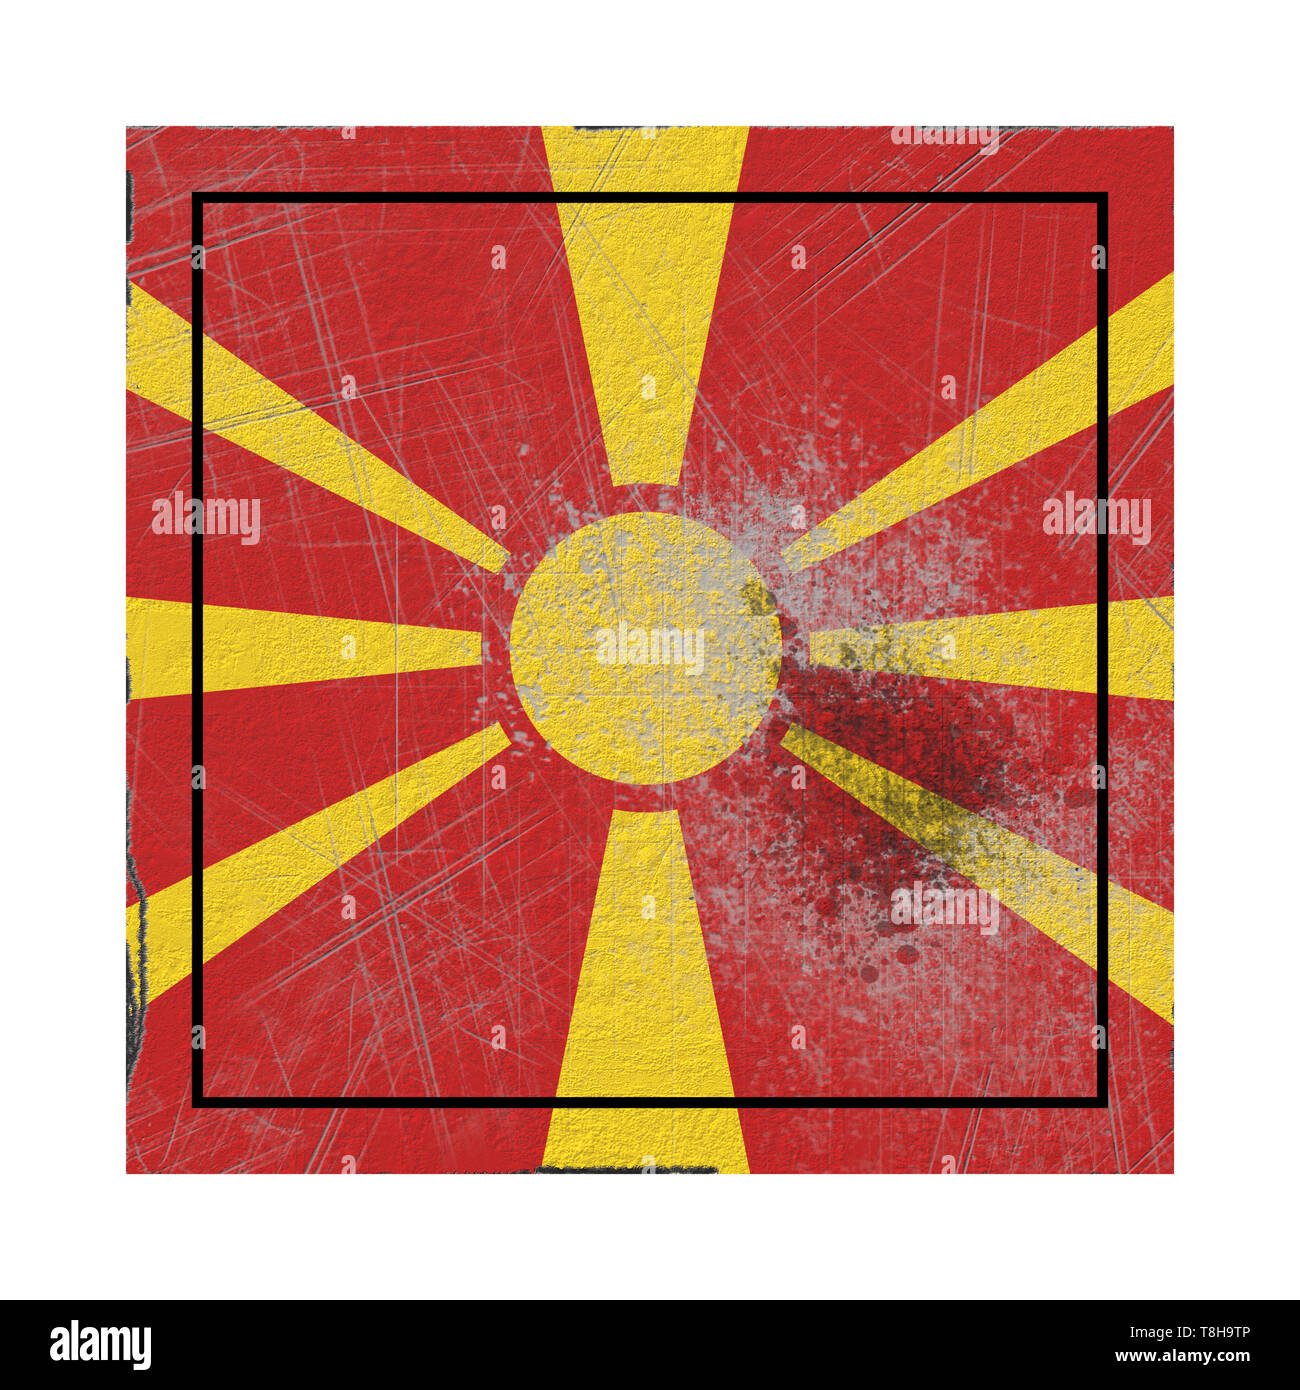 3d rendering of a Macedonia country flag on a rusty surface - Stock Image